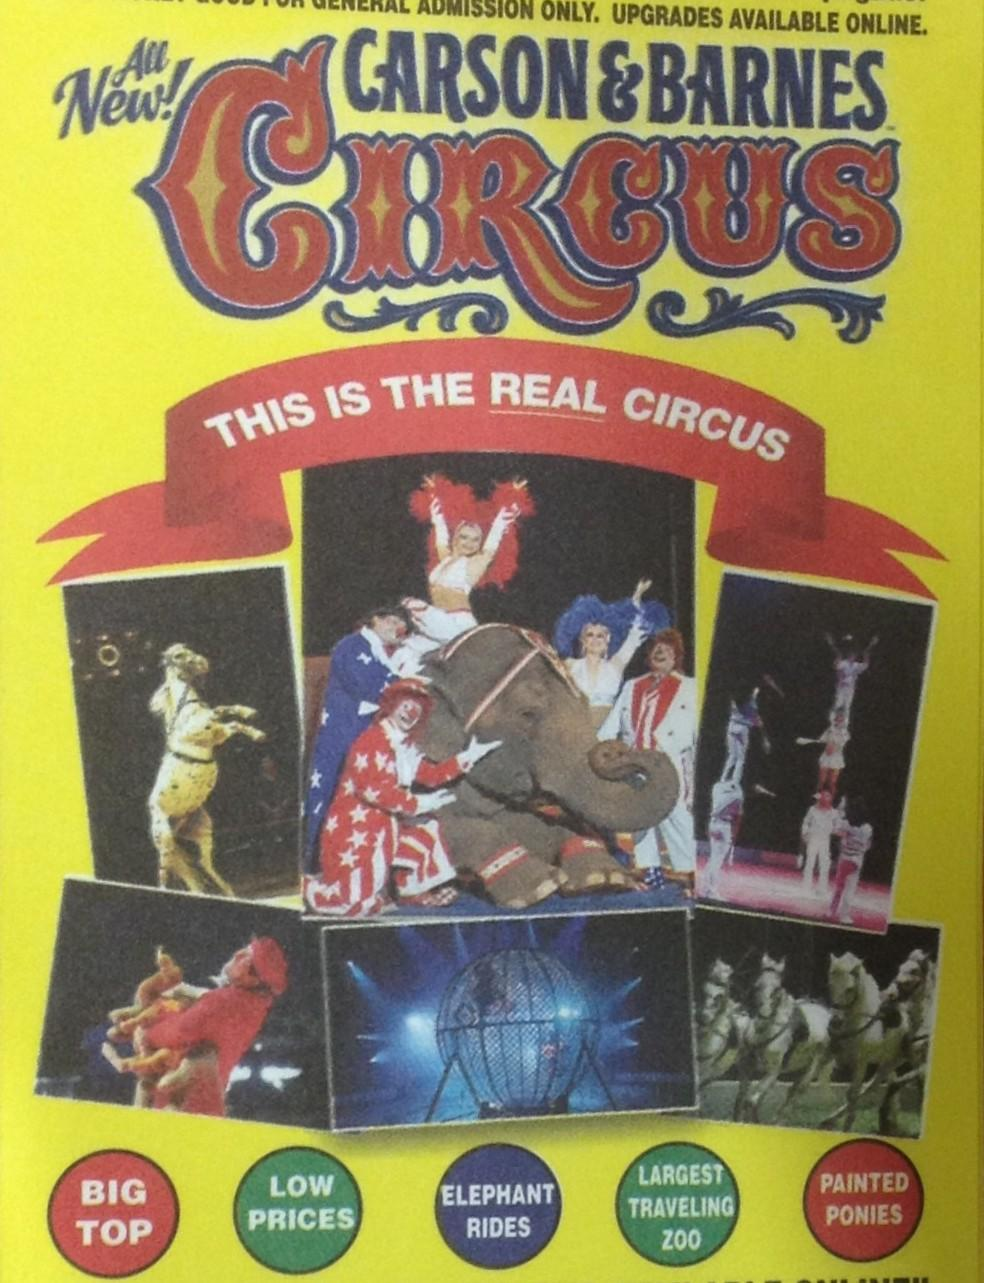 The Carson and Barnes Circus is coming to Fairview March 20-22. There are free tickets available at the Walmart in Lucas for children under 12 with the purchase of an adult ticket.